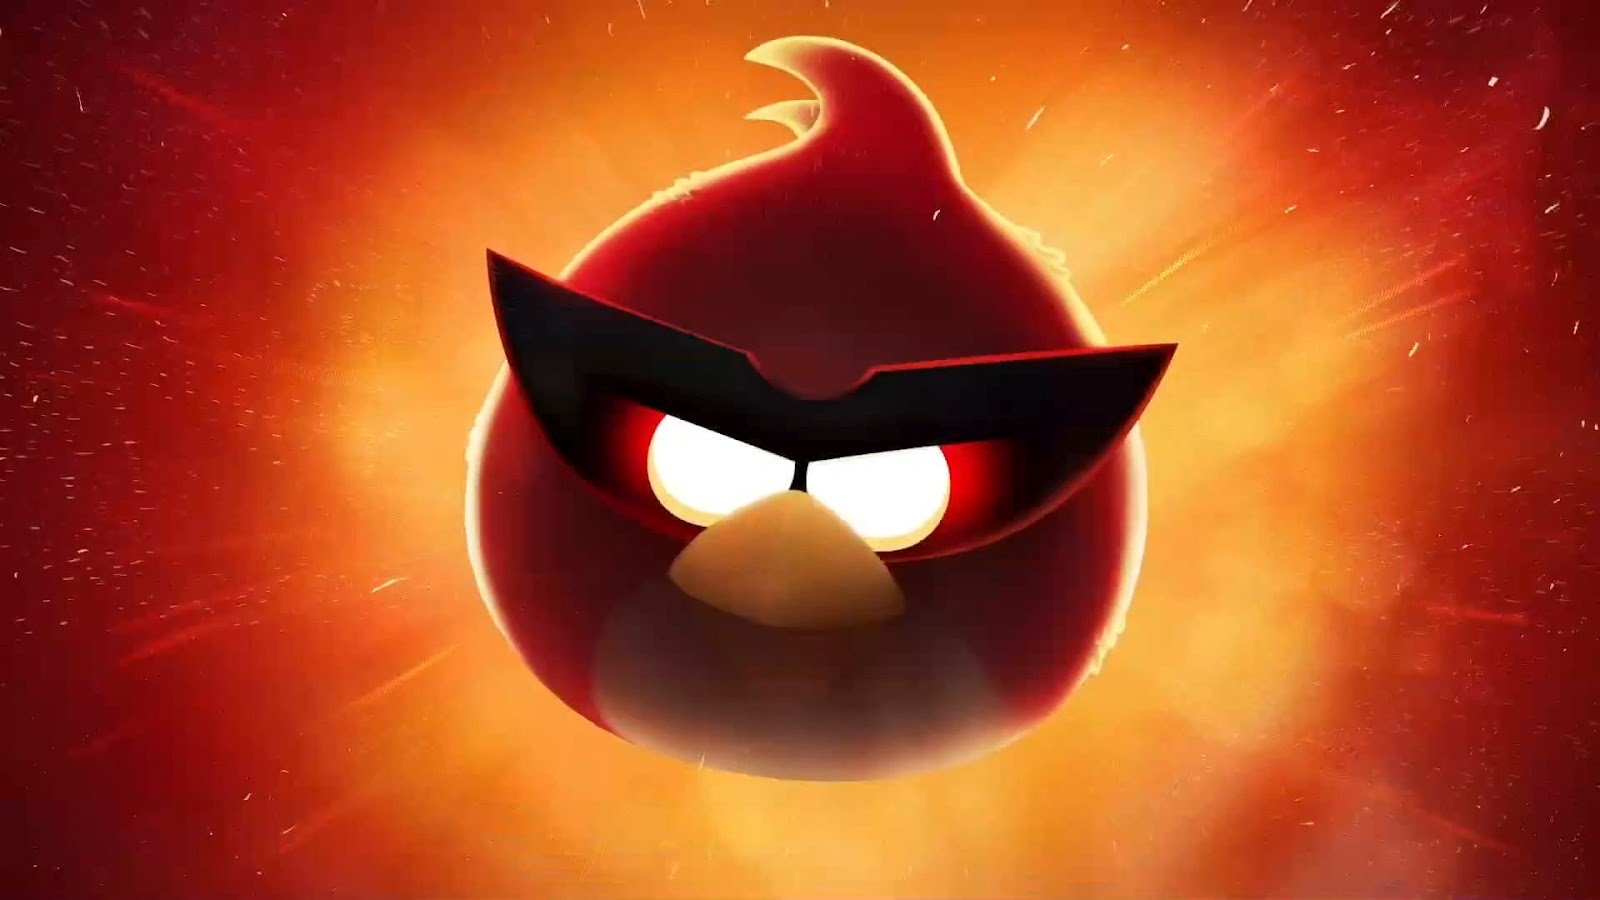 Angry Birds HD Wallpapers DezignHD